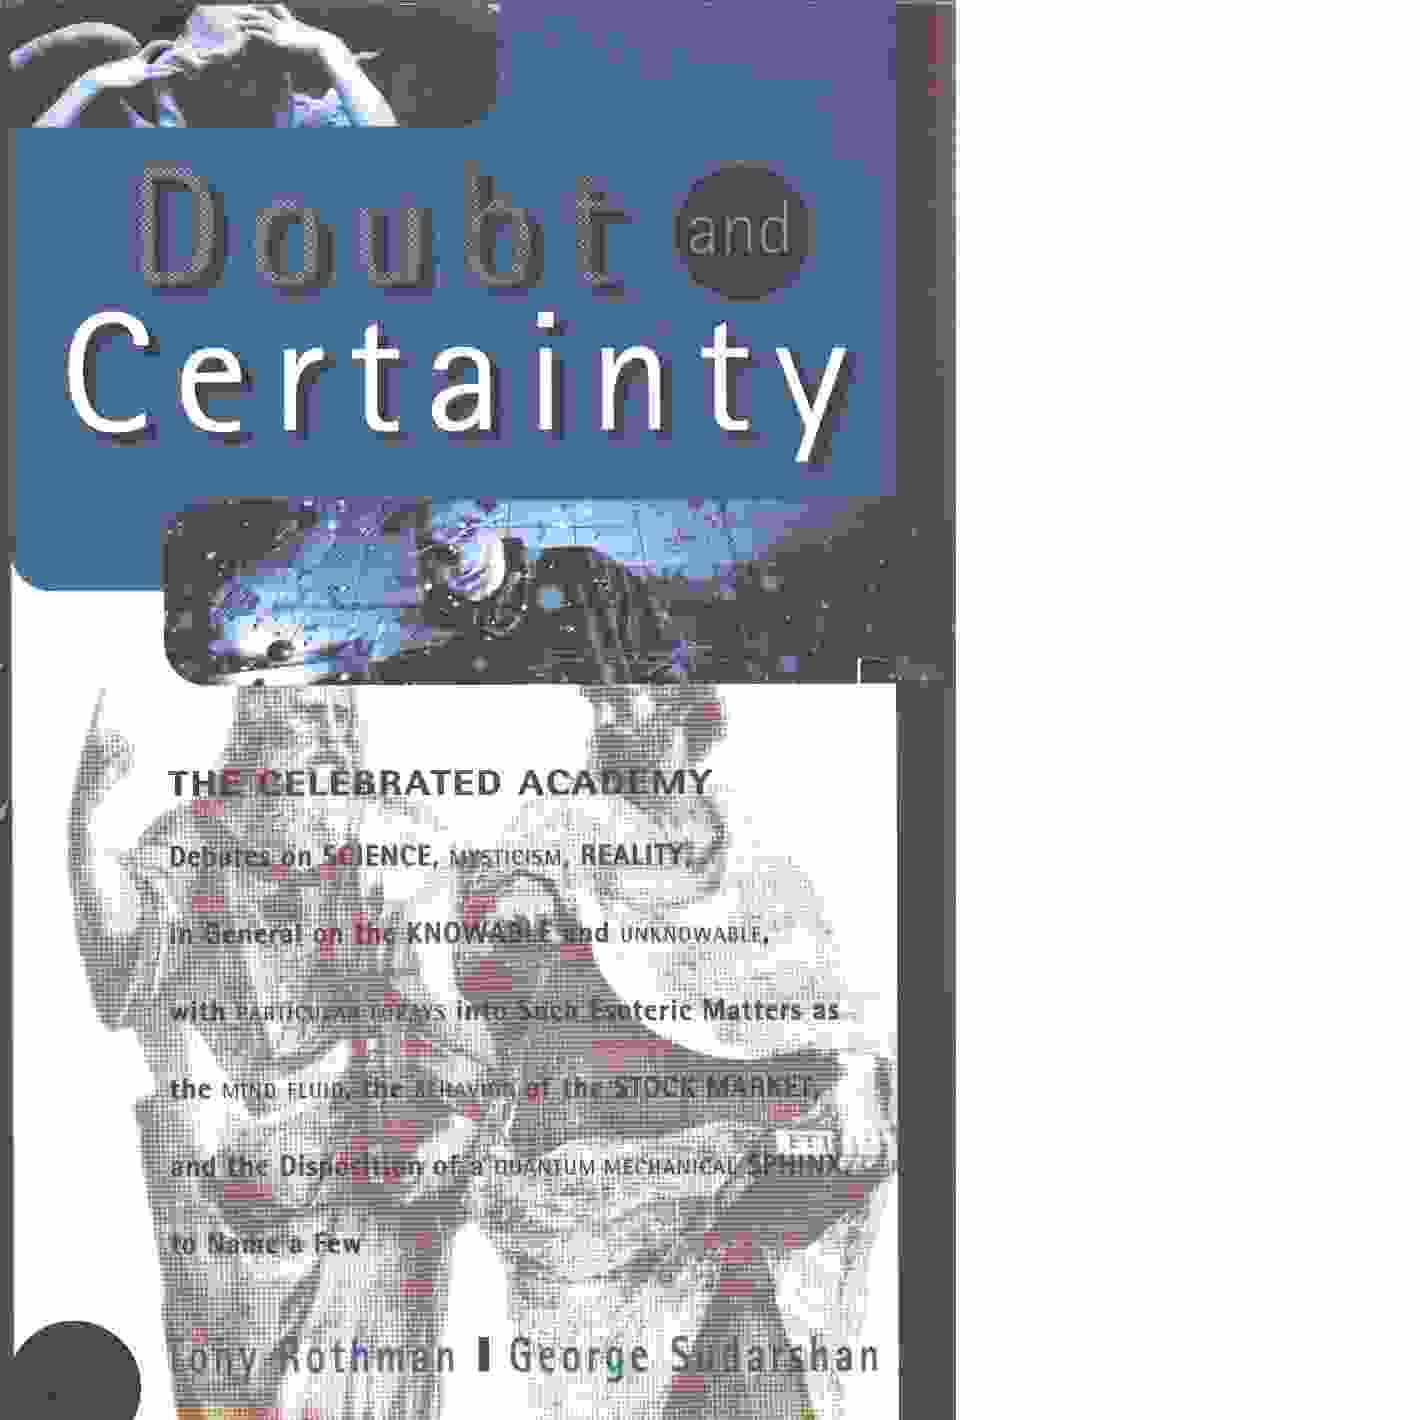 Doubt And Certainty  -  Rothman, Tony and   Sudarshan,  George